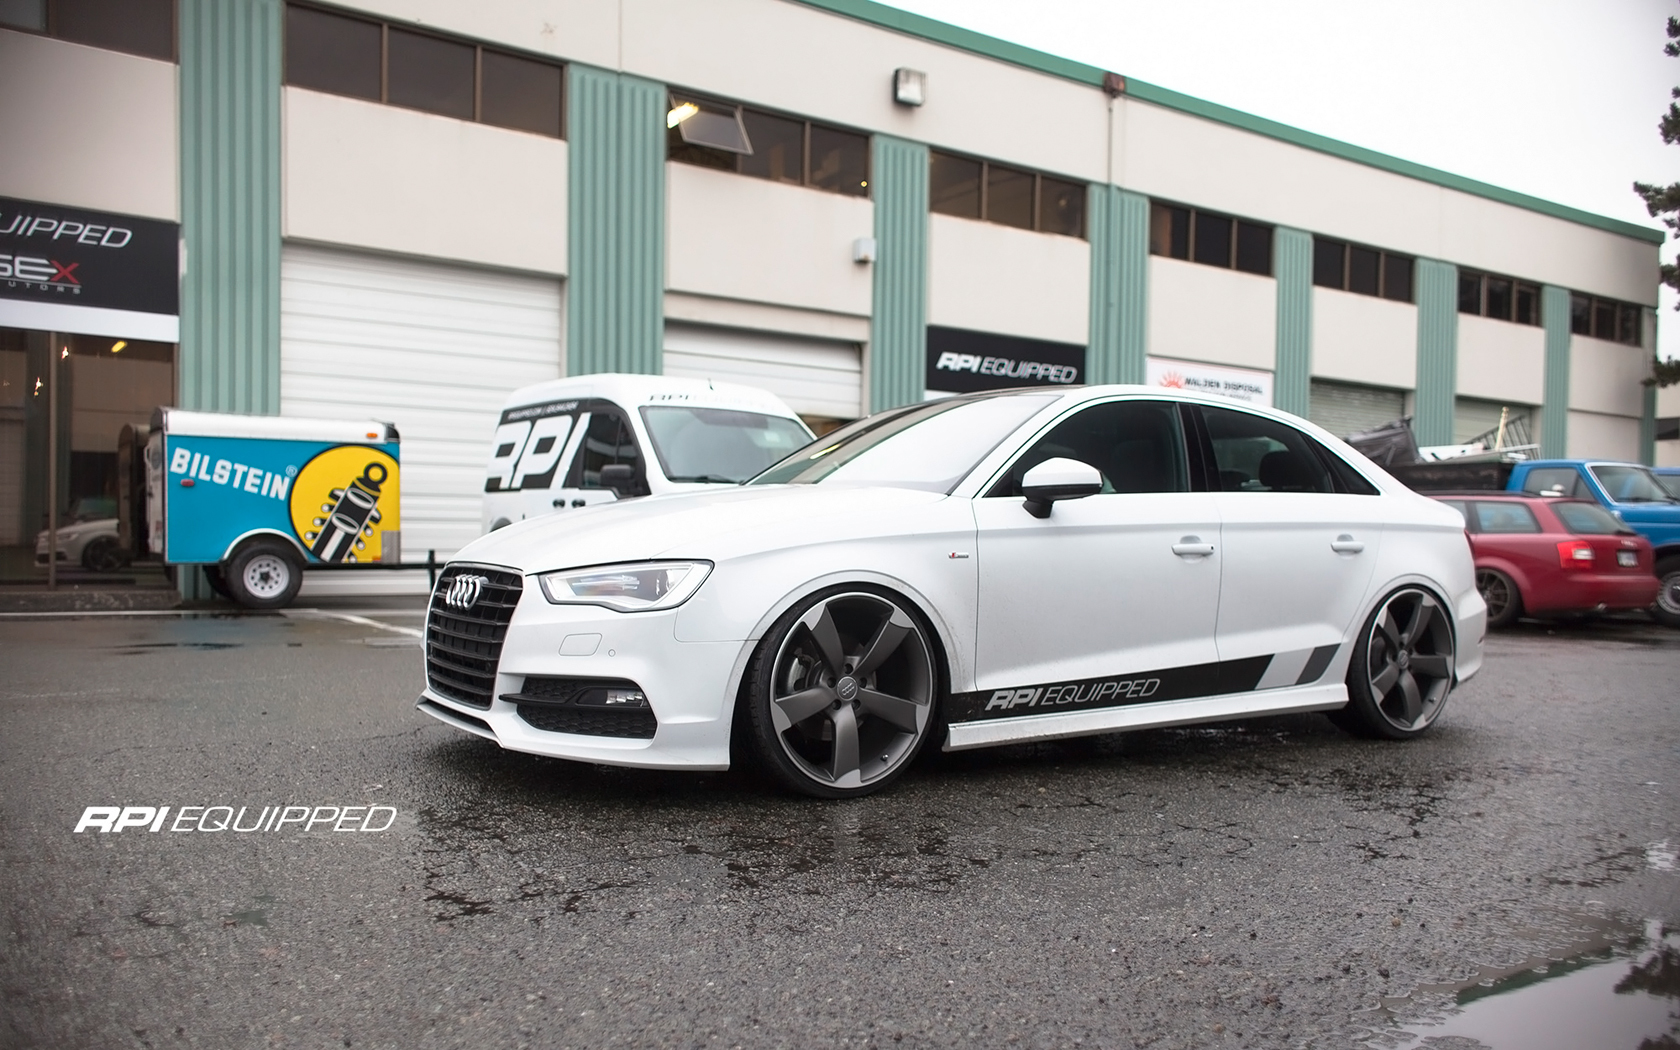 Ford Dealers Ma >> Hartmann HTT-256-MA:M Wheels for Audi fitment - Hartmann ...